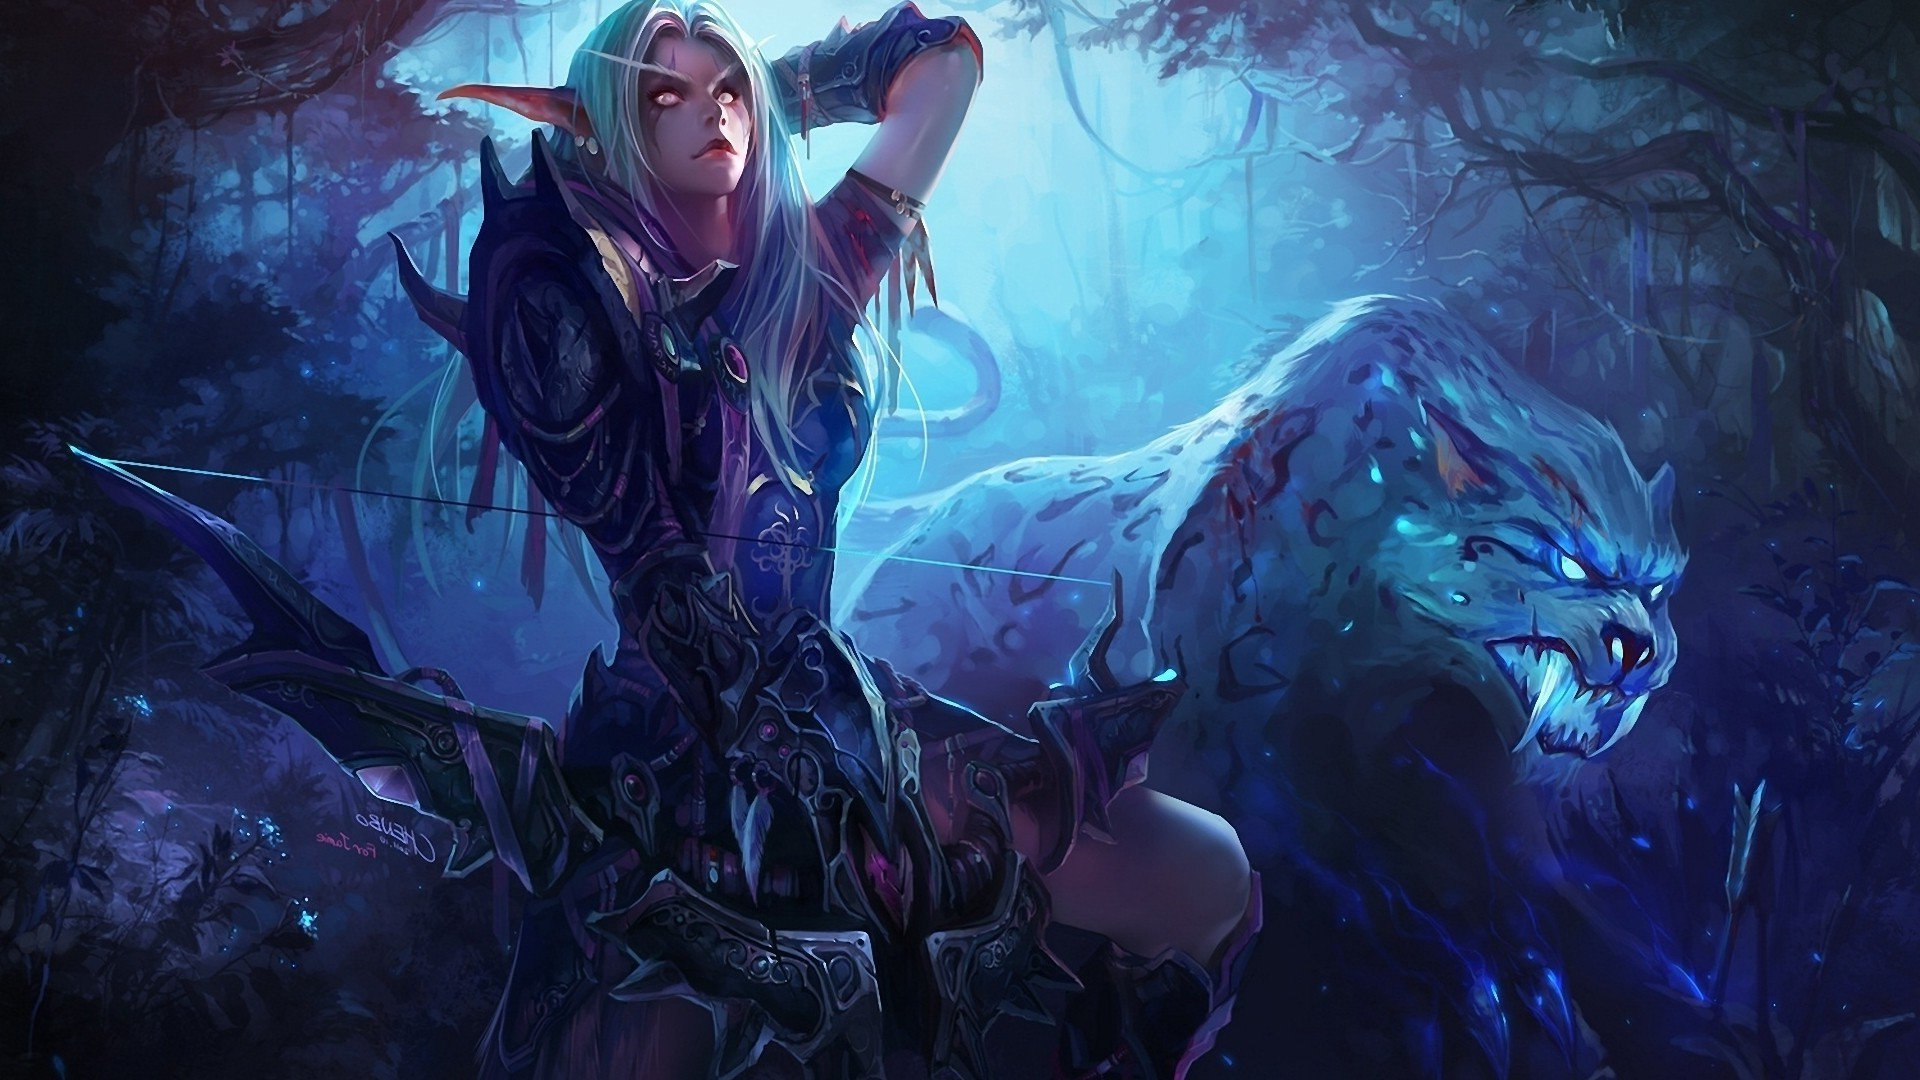 Girl World Of Warcraft, HD Games, 4k Wallpapers, Images